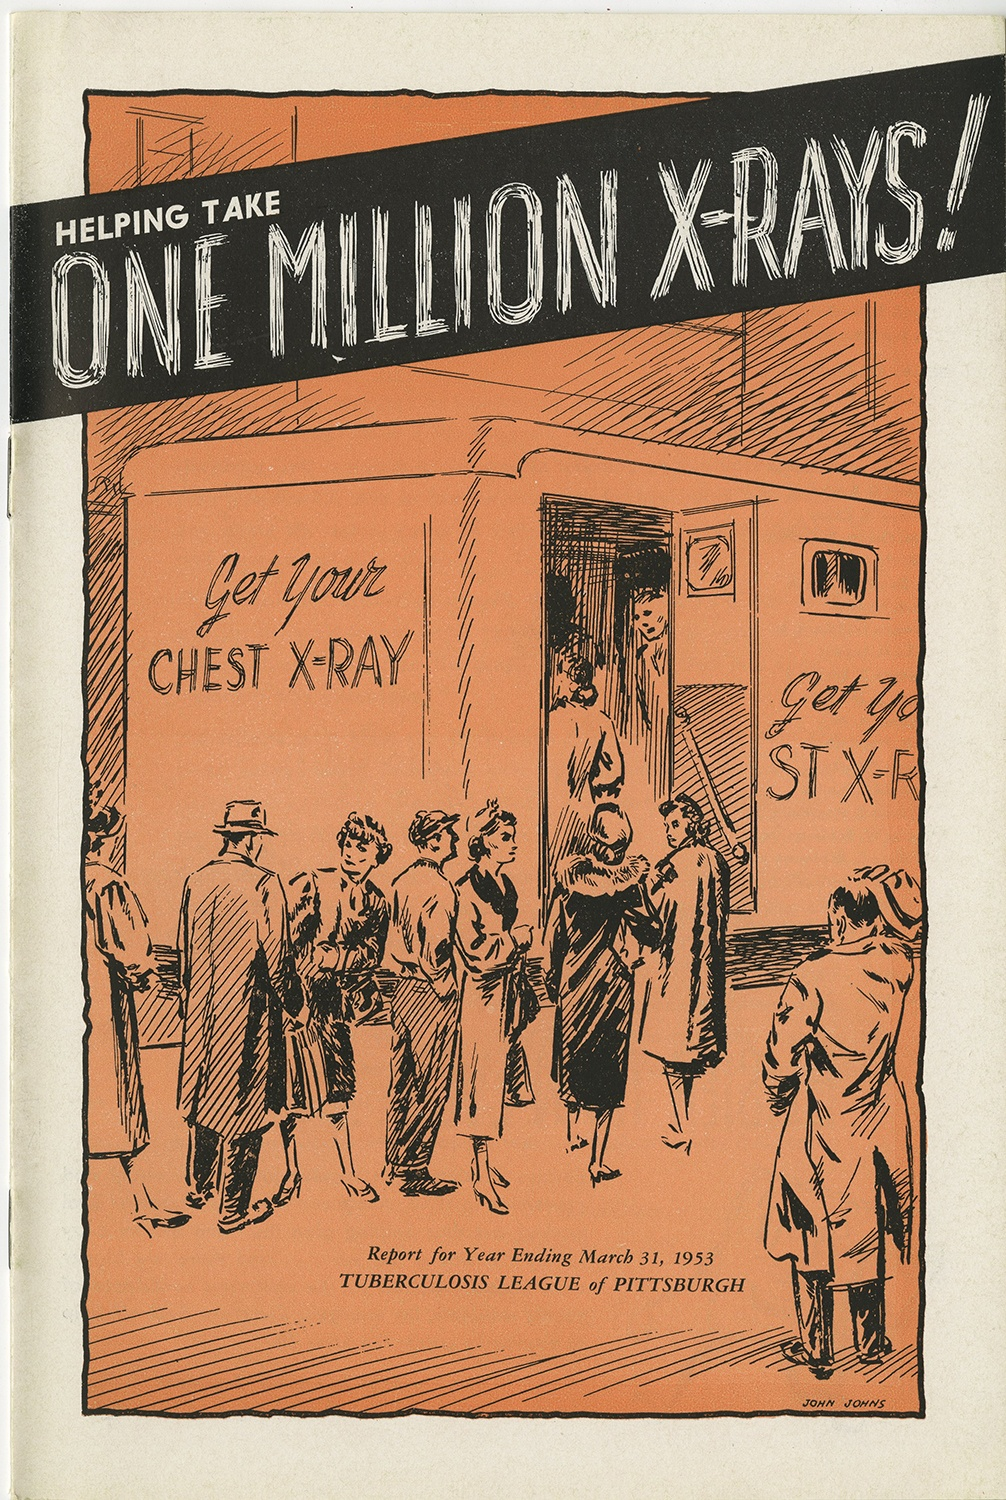 Cover of the 1953 Tuberculosis League of Pittsburgh annual report.